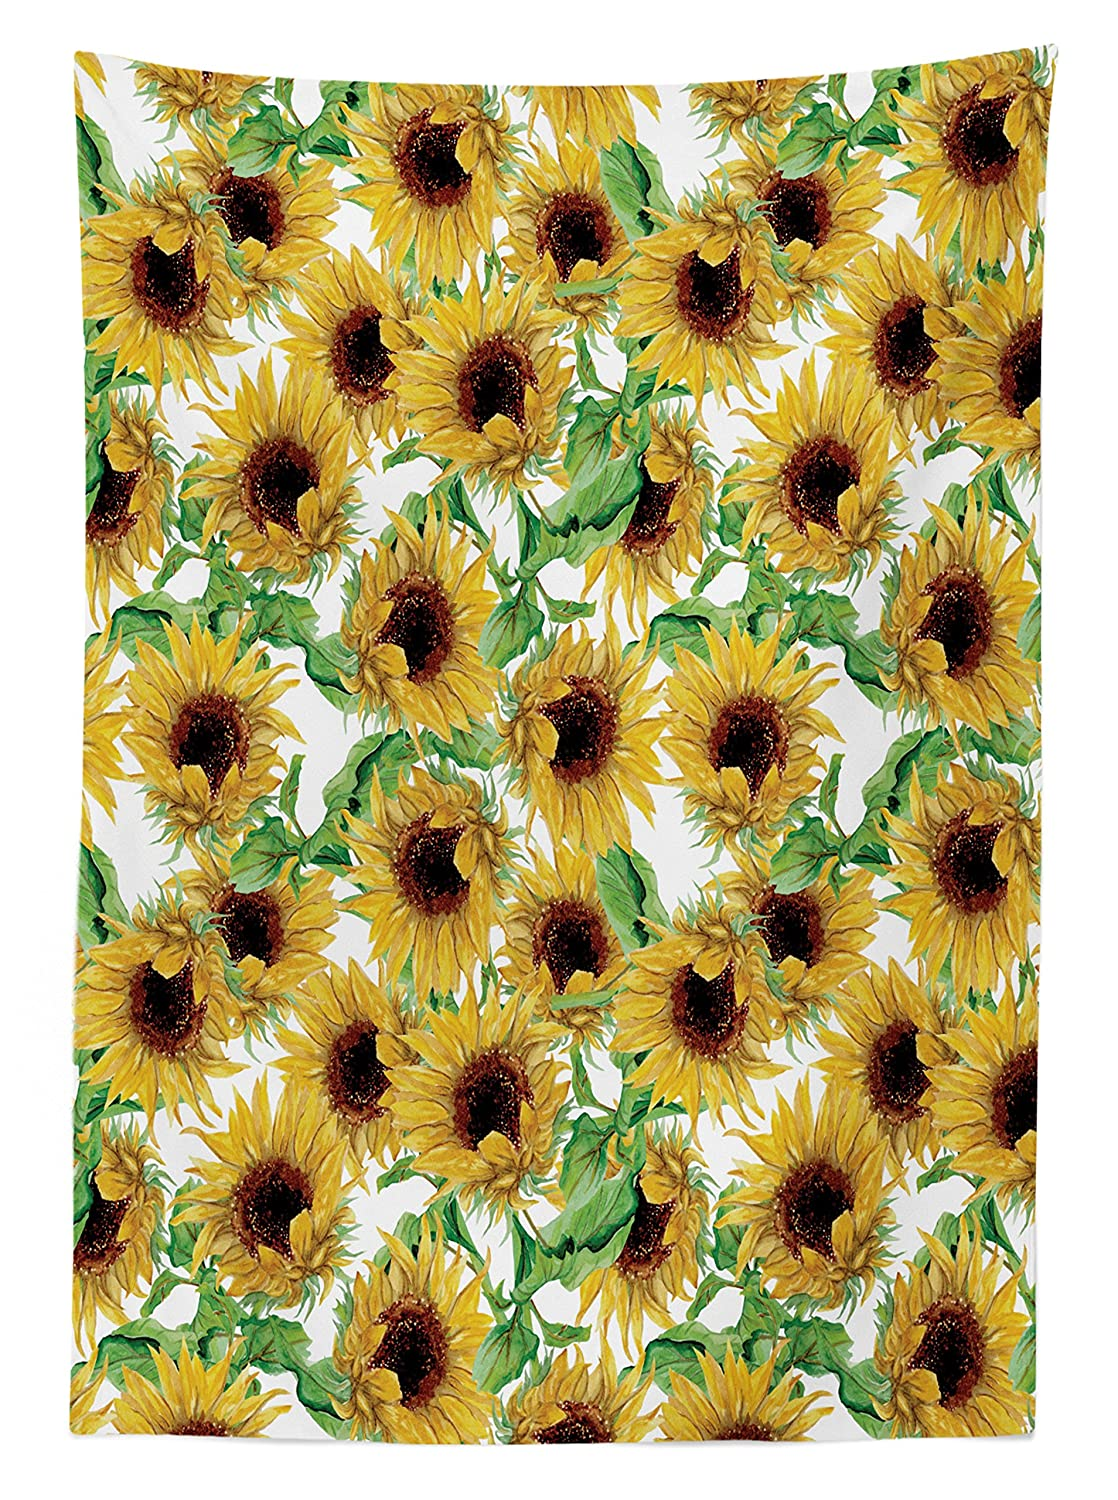 60 X 90 Inches Dining Room Kitchen Rectangular Table Cover Ambesonne Sunflower Decor Tablecloth by Dried Sunflowers Illustration Wildflowers Branch Herbarium Artistic Design Fine Art